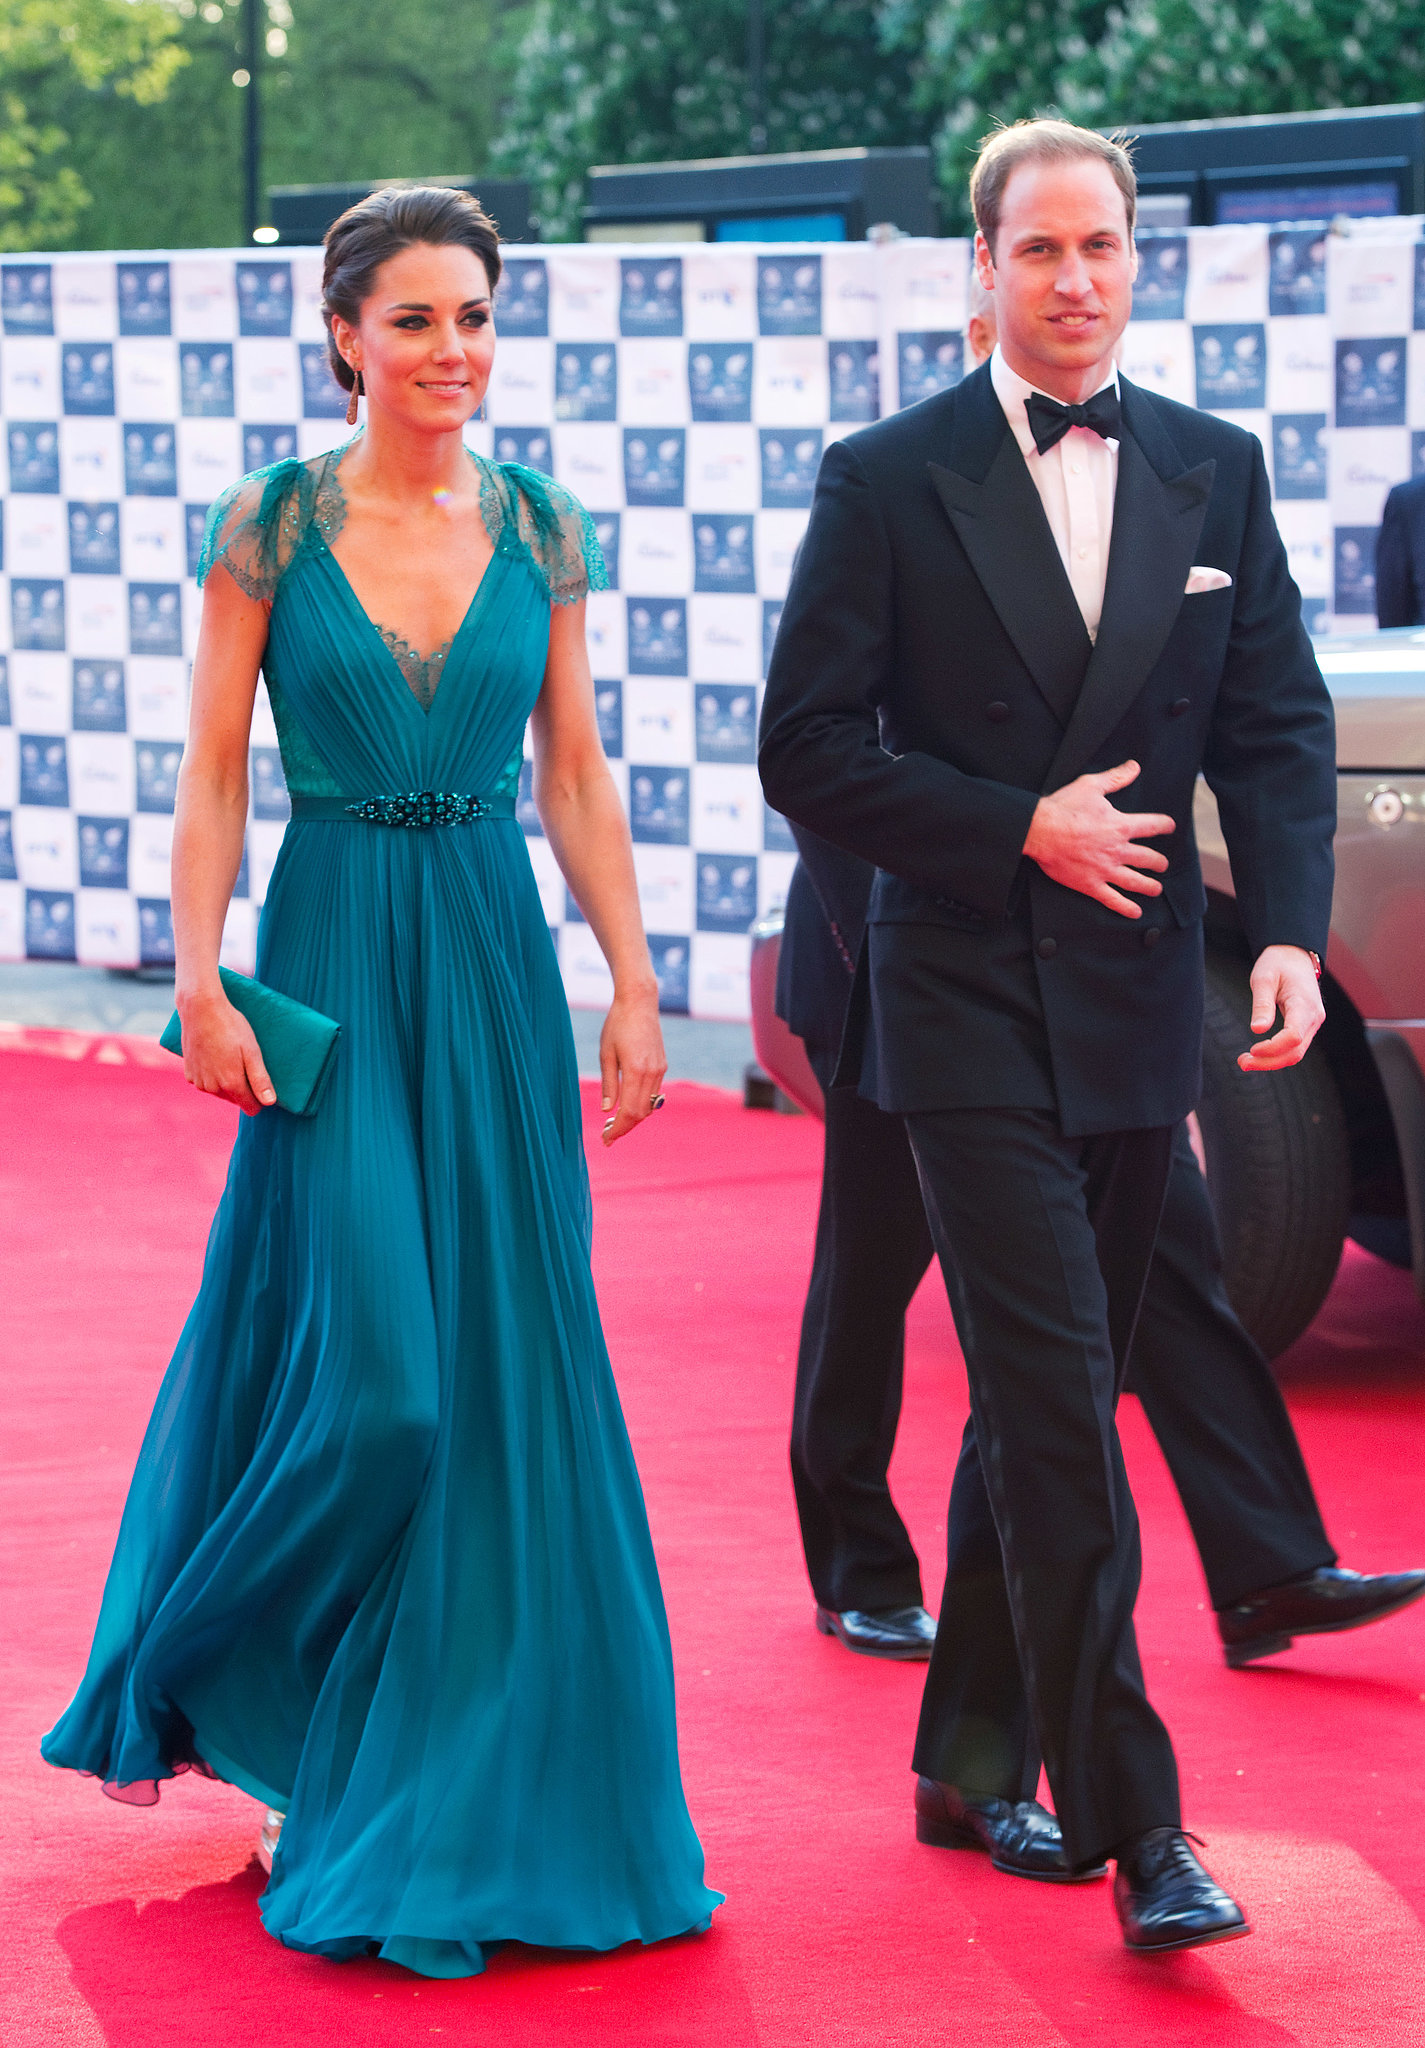 She looked stunning on the red carpet when she attended a launch party for the London Paralympics in May 2012 with Prince William.